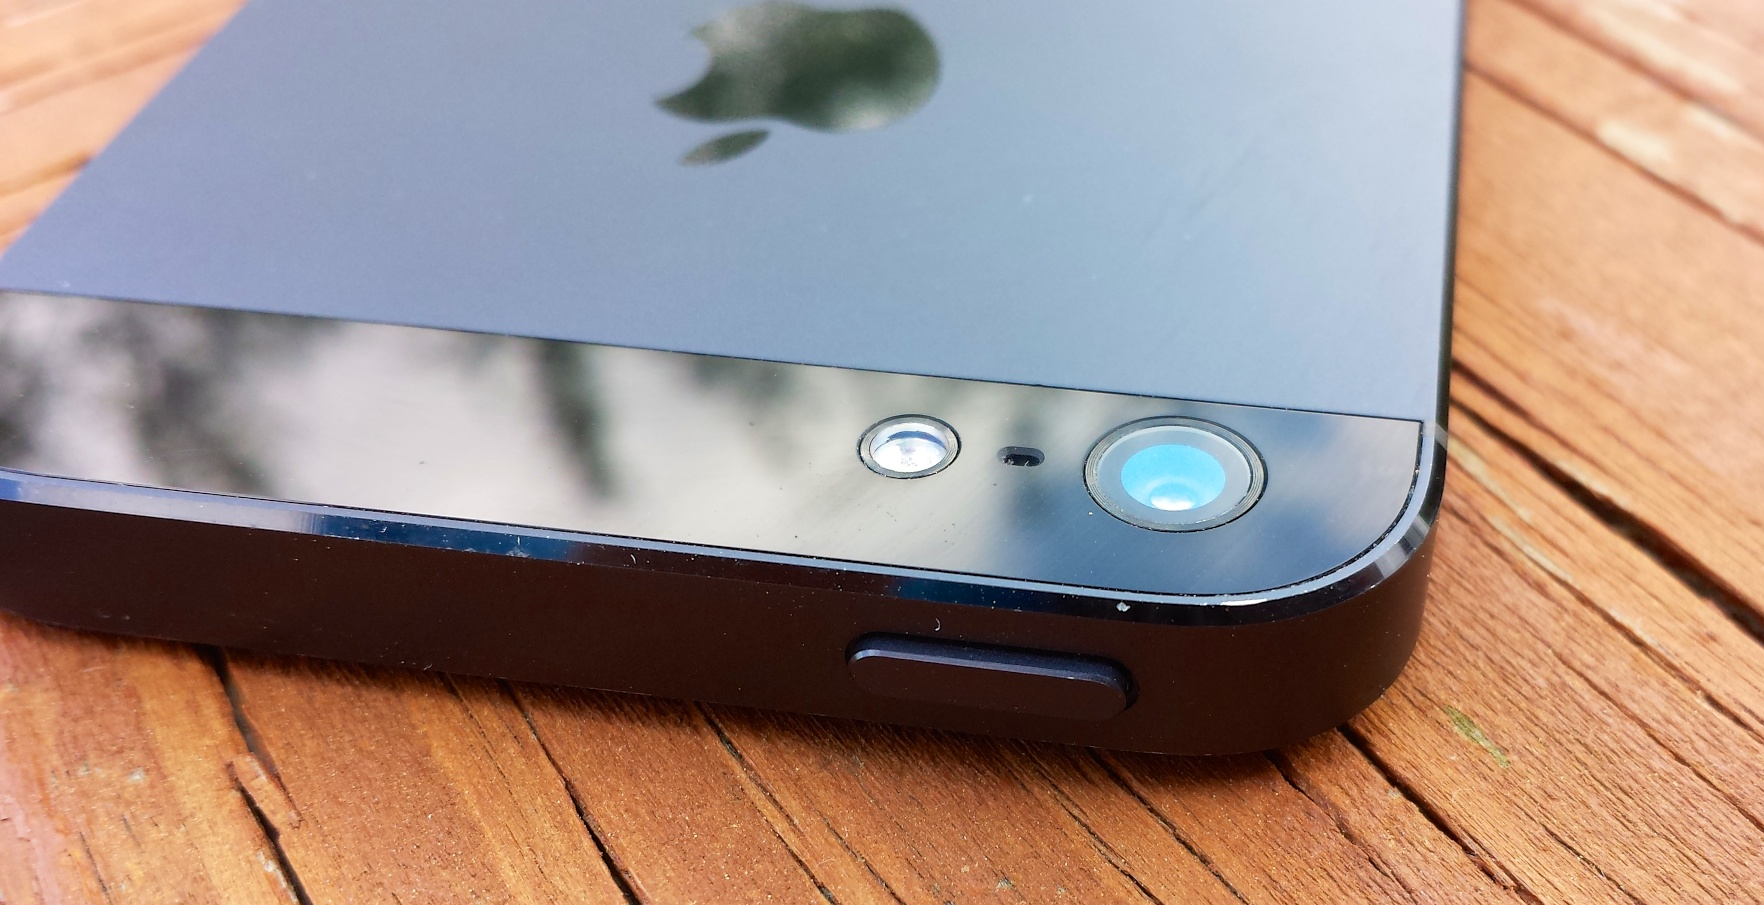 The iPhone 5S is more likely than the iPhone 6 in 2013.